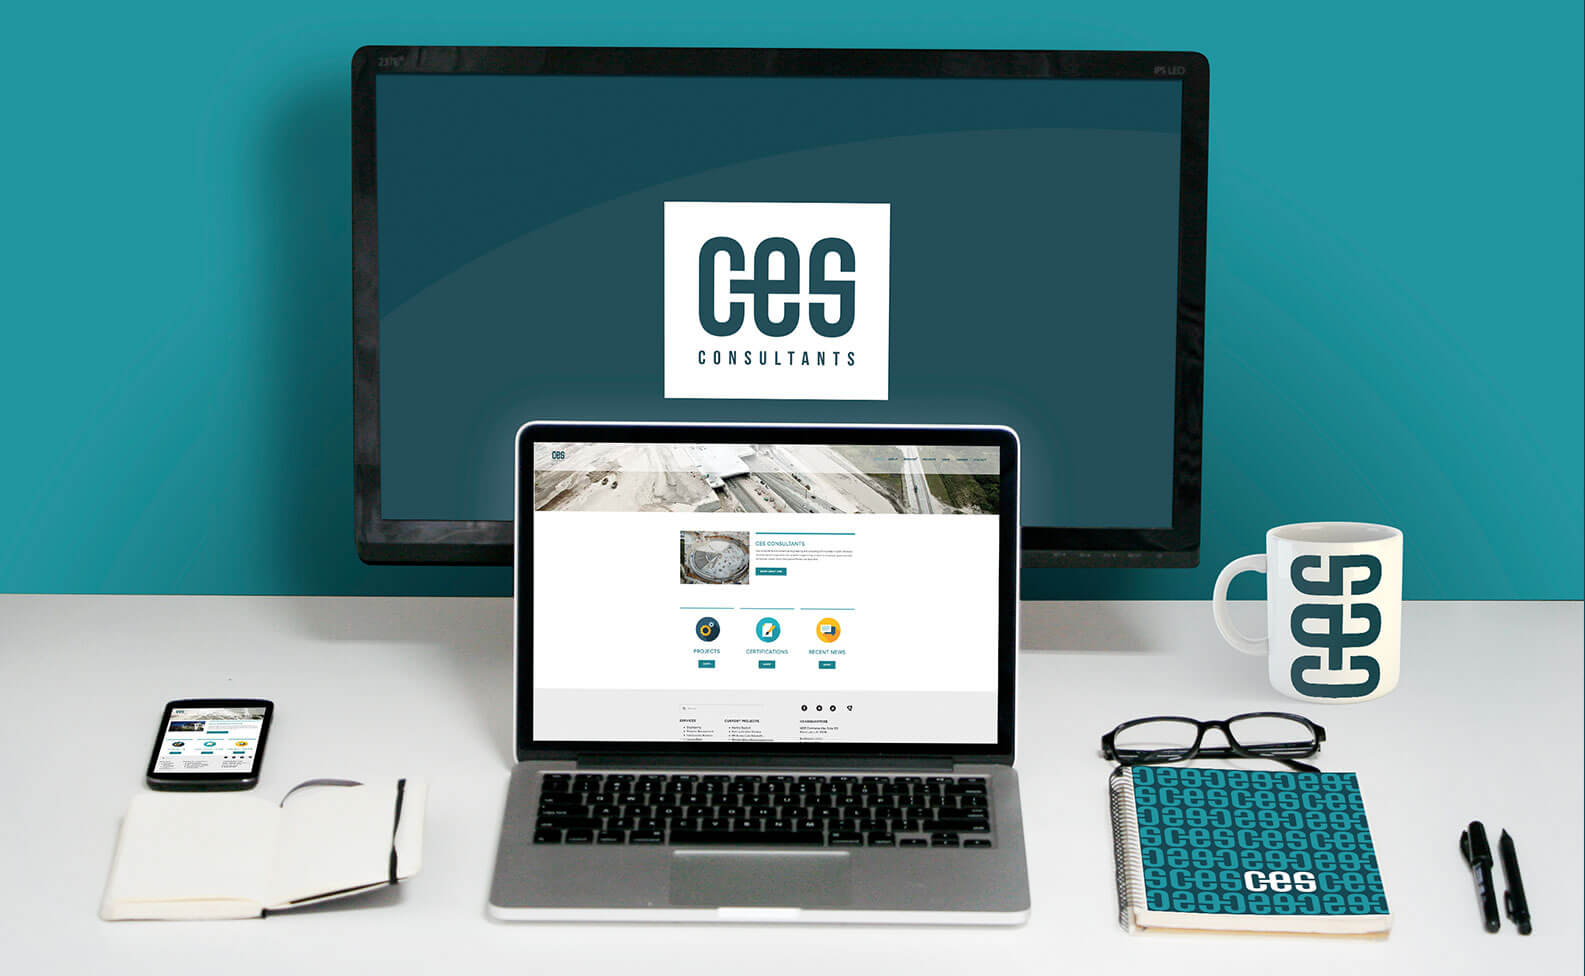 CES Consulting web design by Jacober Creative